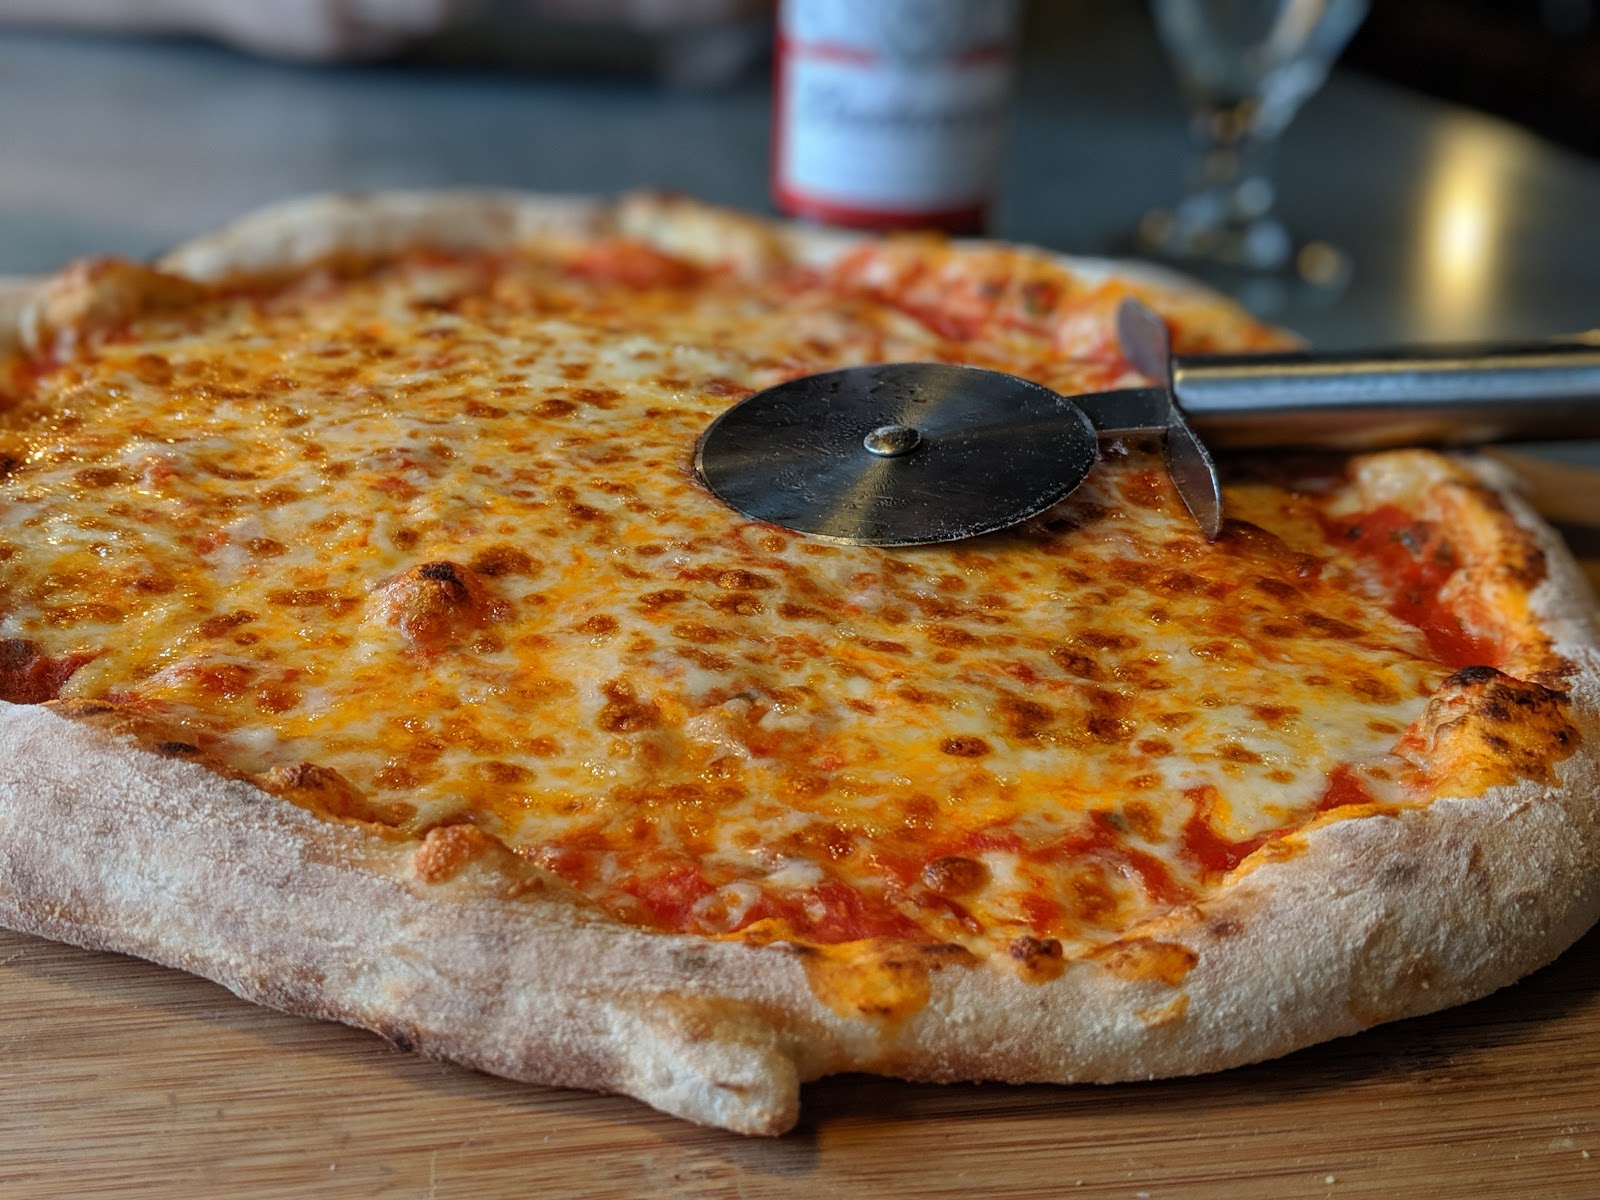 Kids Eat Free at Porky's - A Review  - margherita pizza